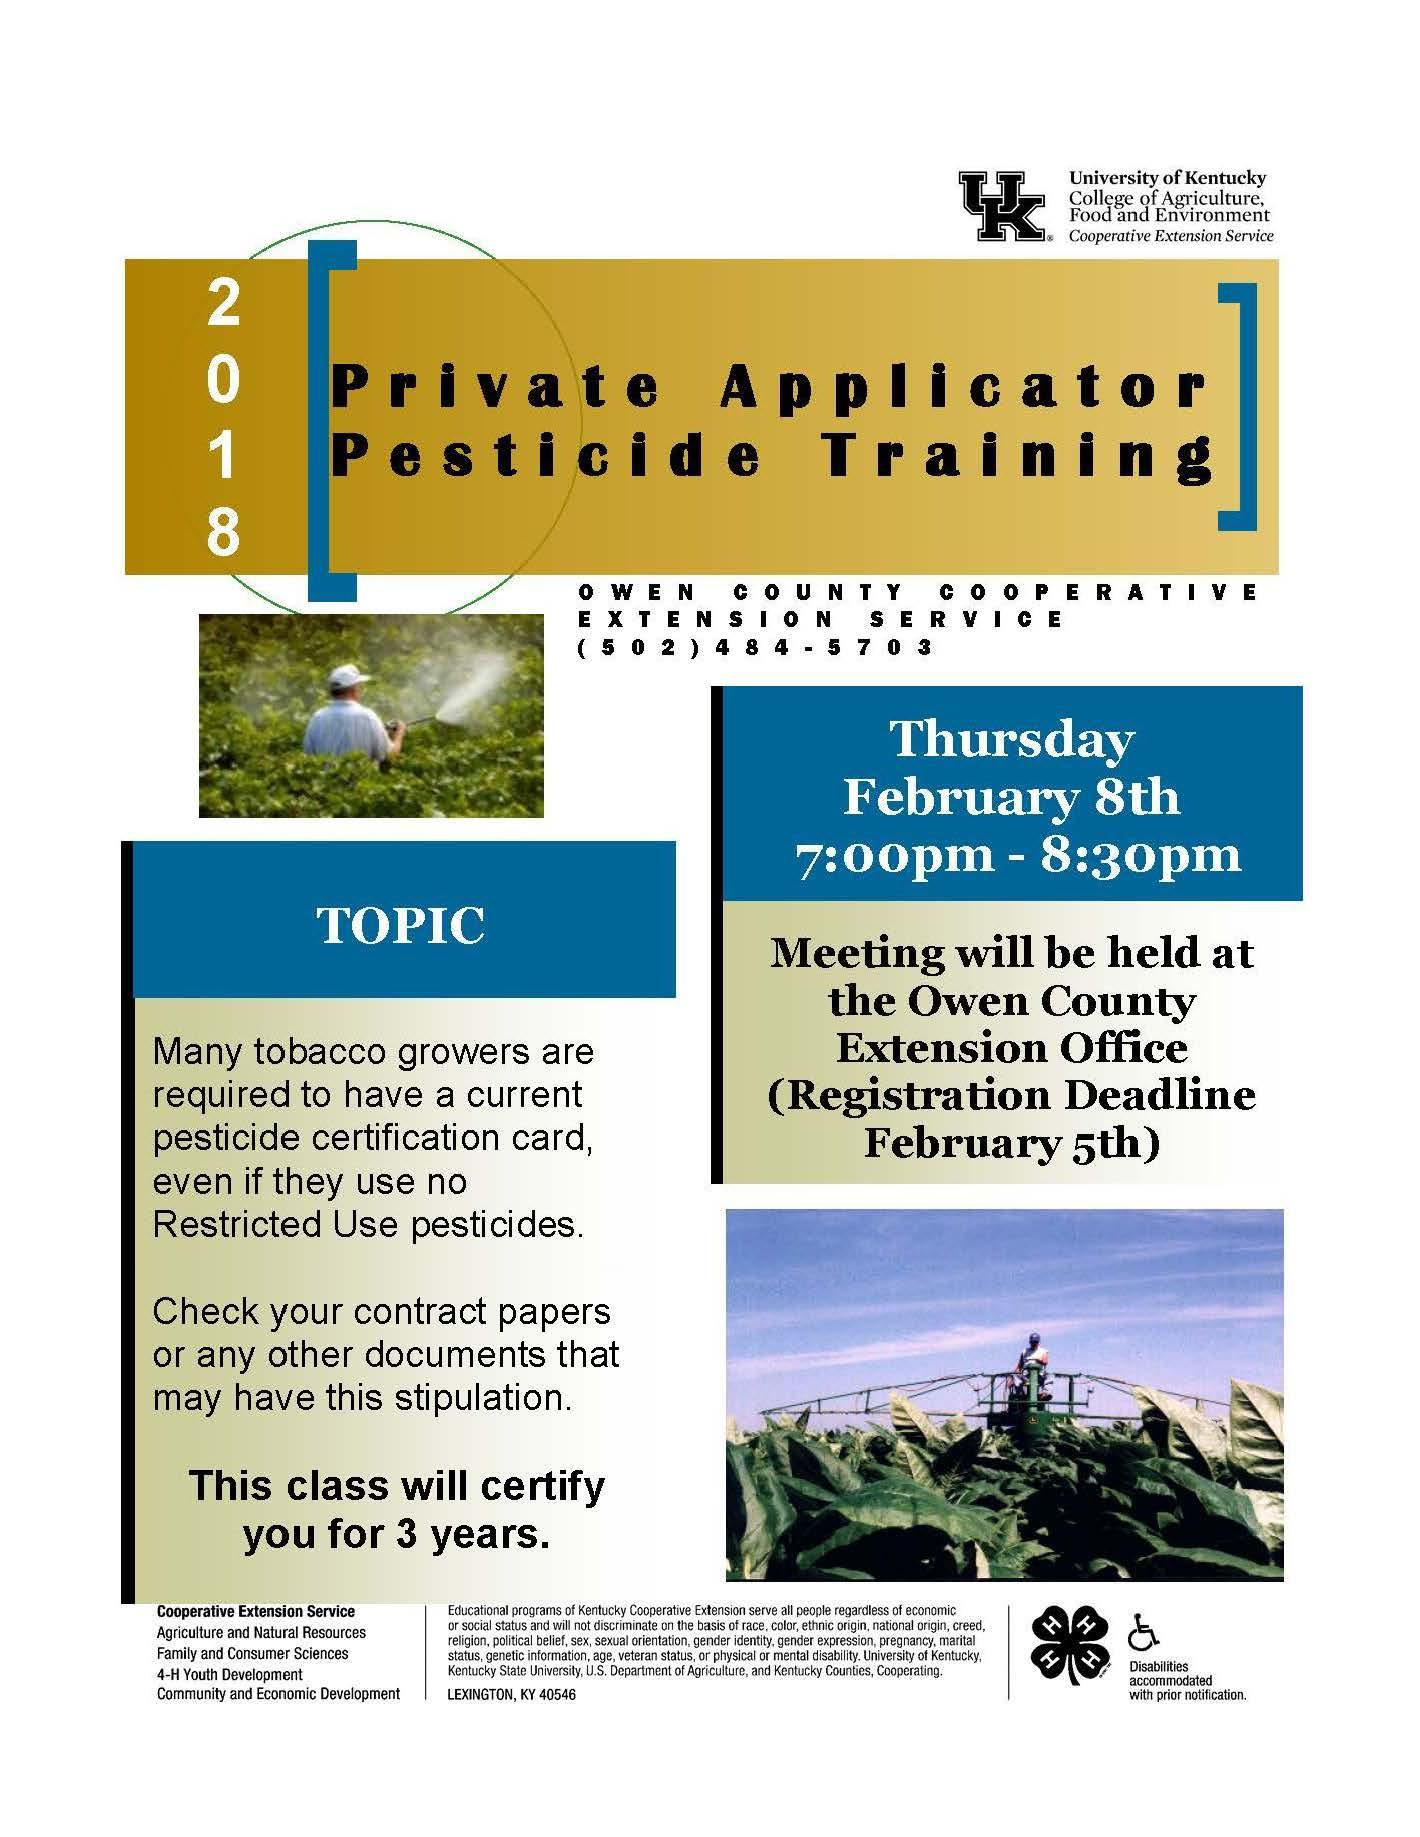 Private Pesticide Applicator Pesticide Training Flyer held on 02.08.18